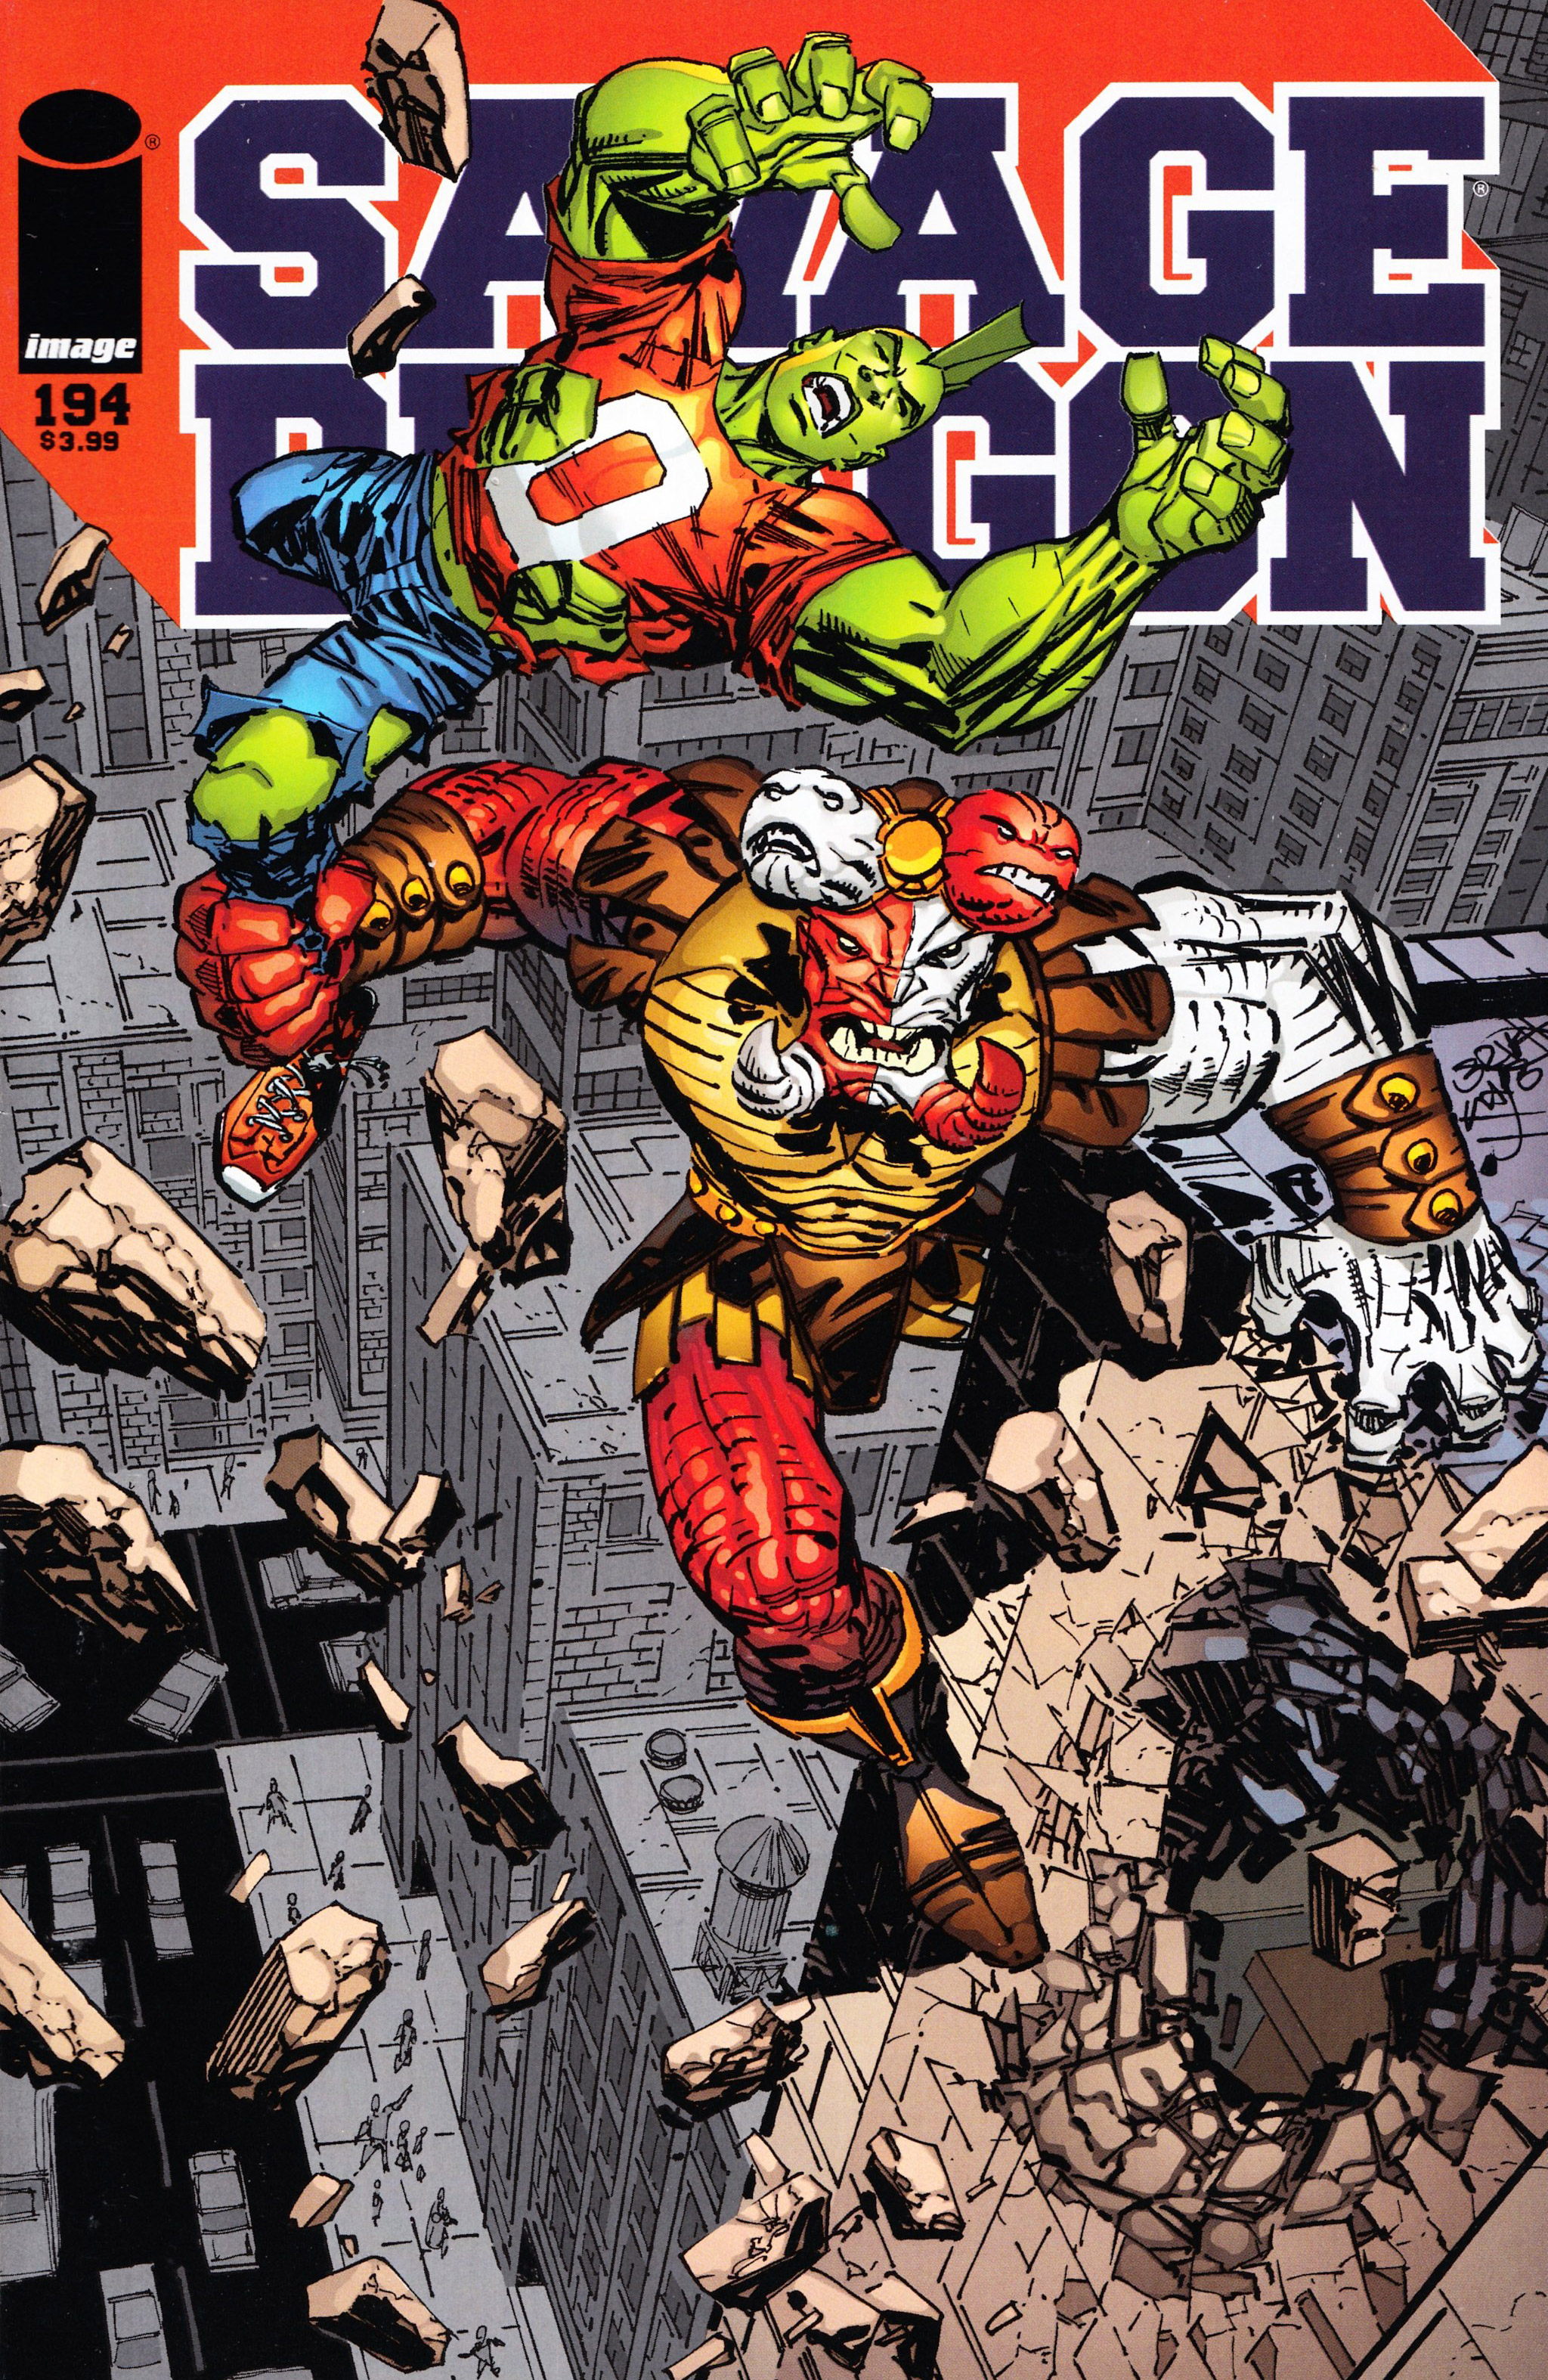 Cover Savage Dragon Vol.2 #194